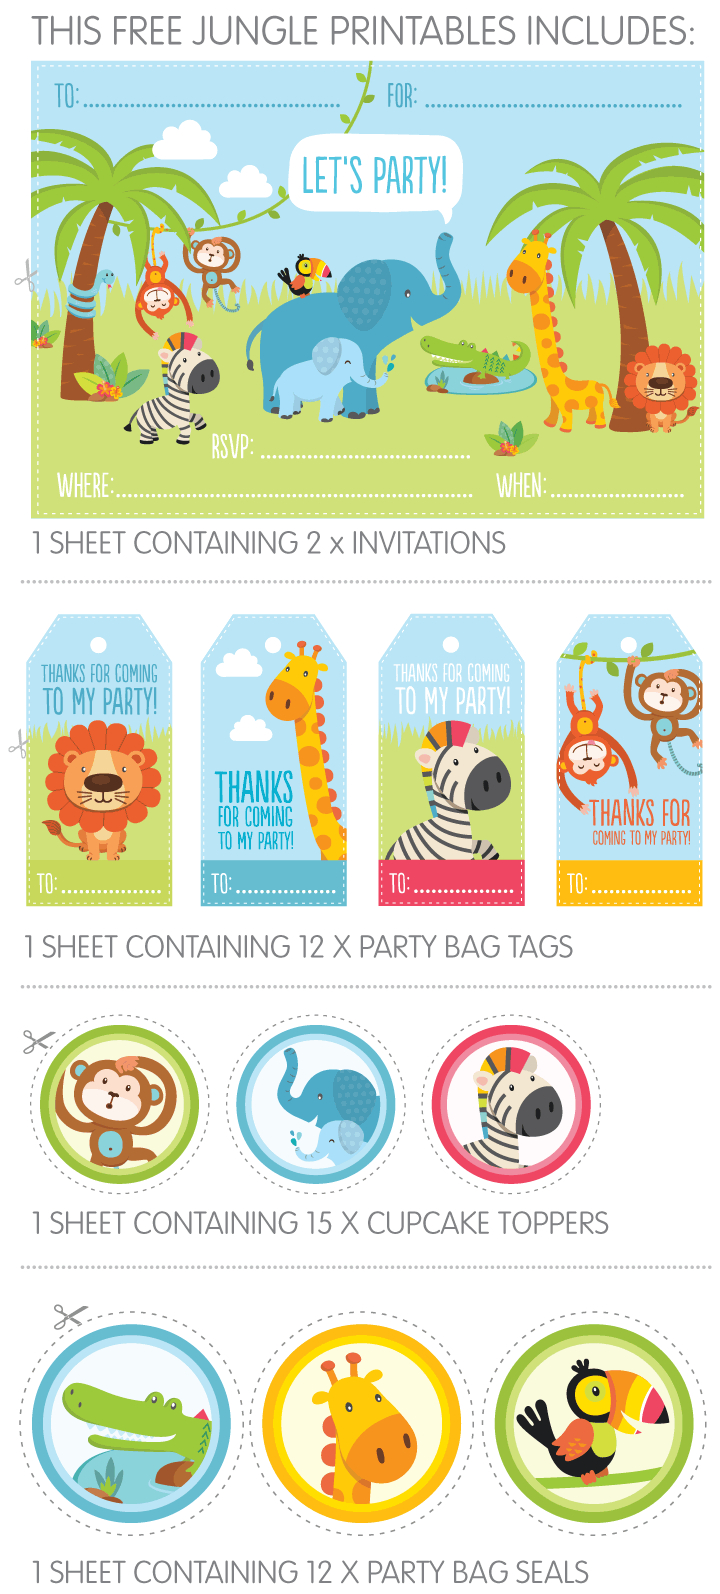 Free Jungle Party Invitation Printables   Give-Aways   Jungle Party - Jungle Theme Birthday Invitations Free Printable